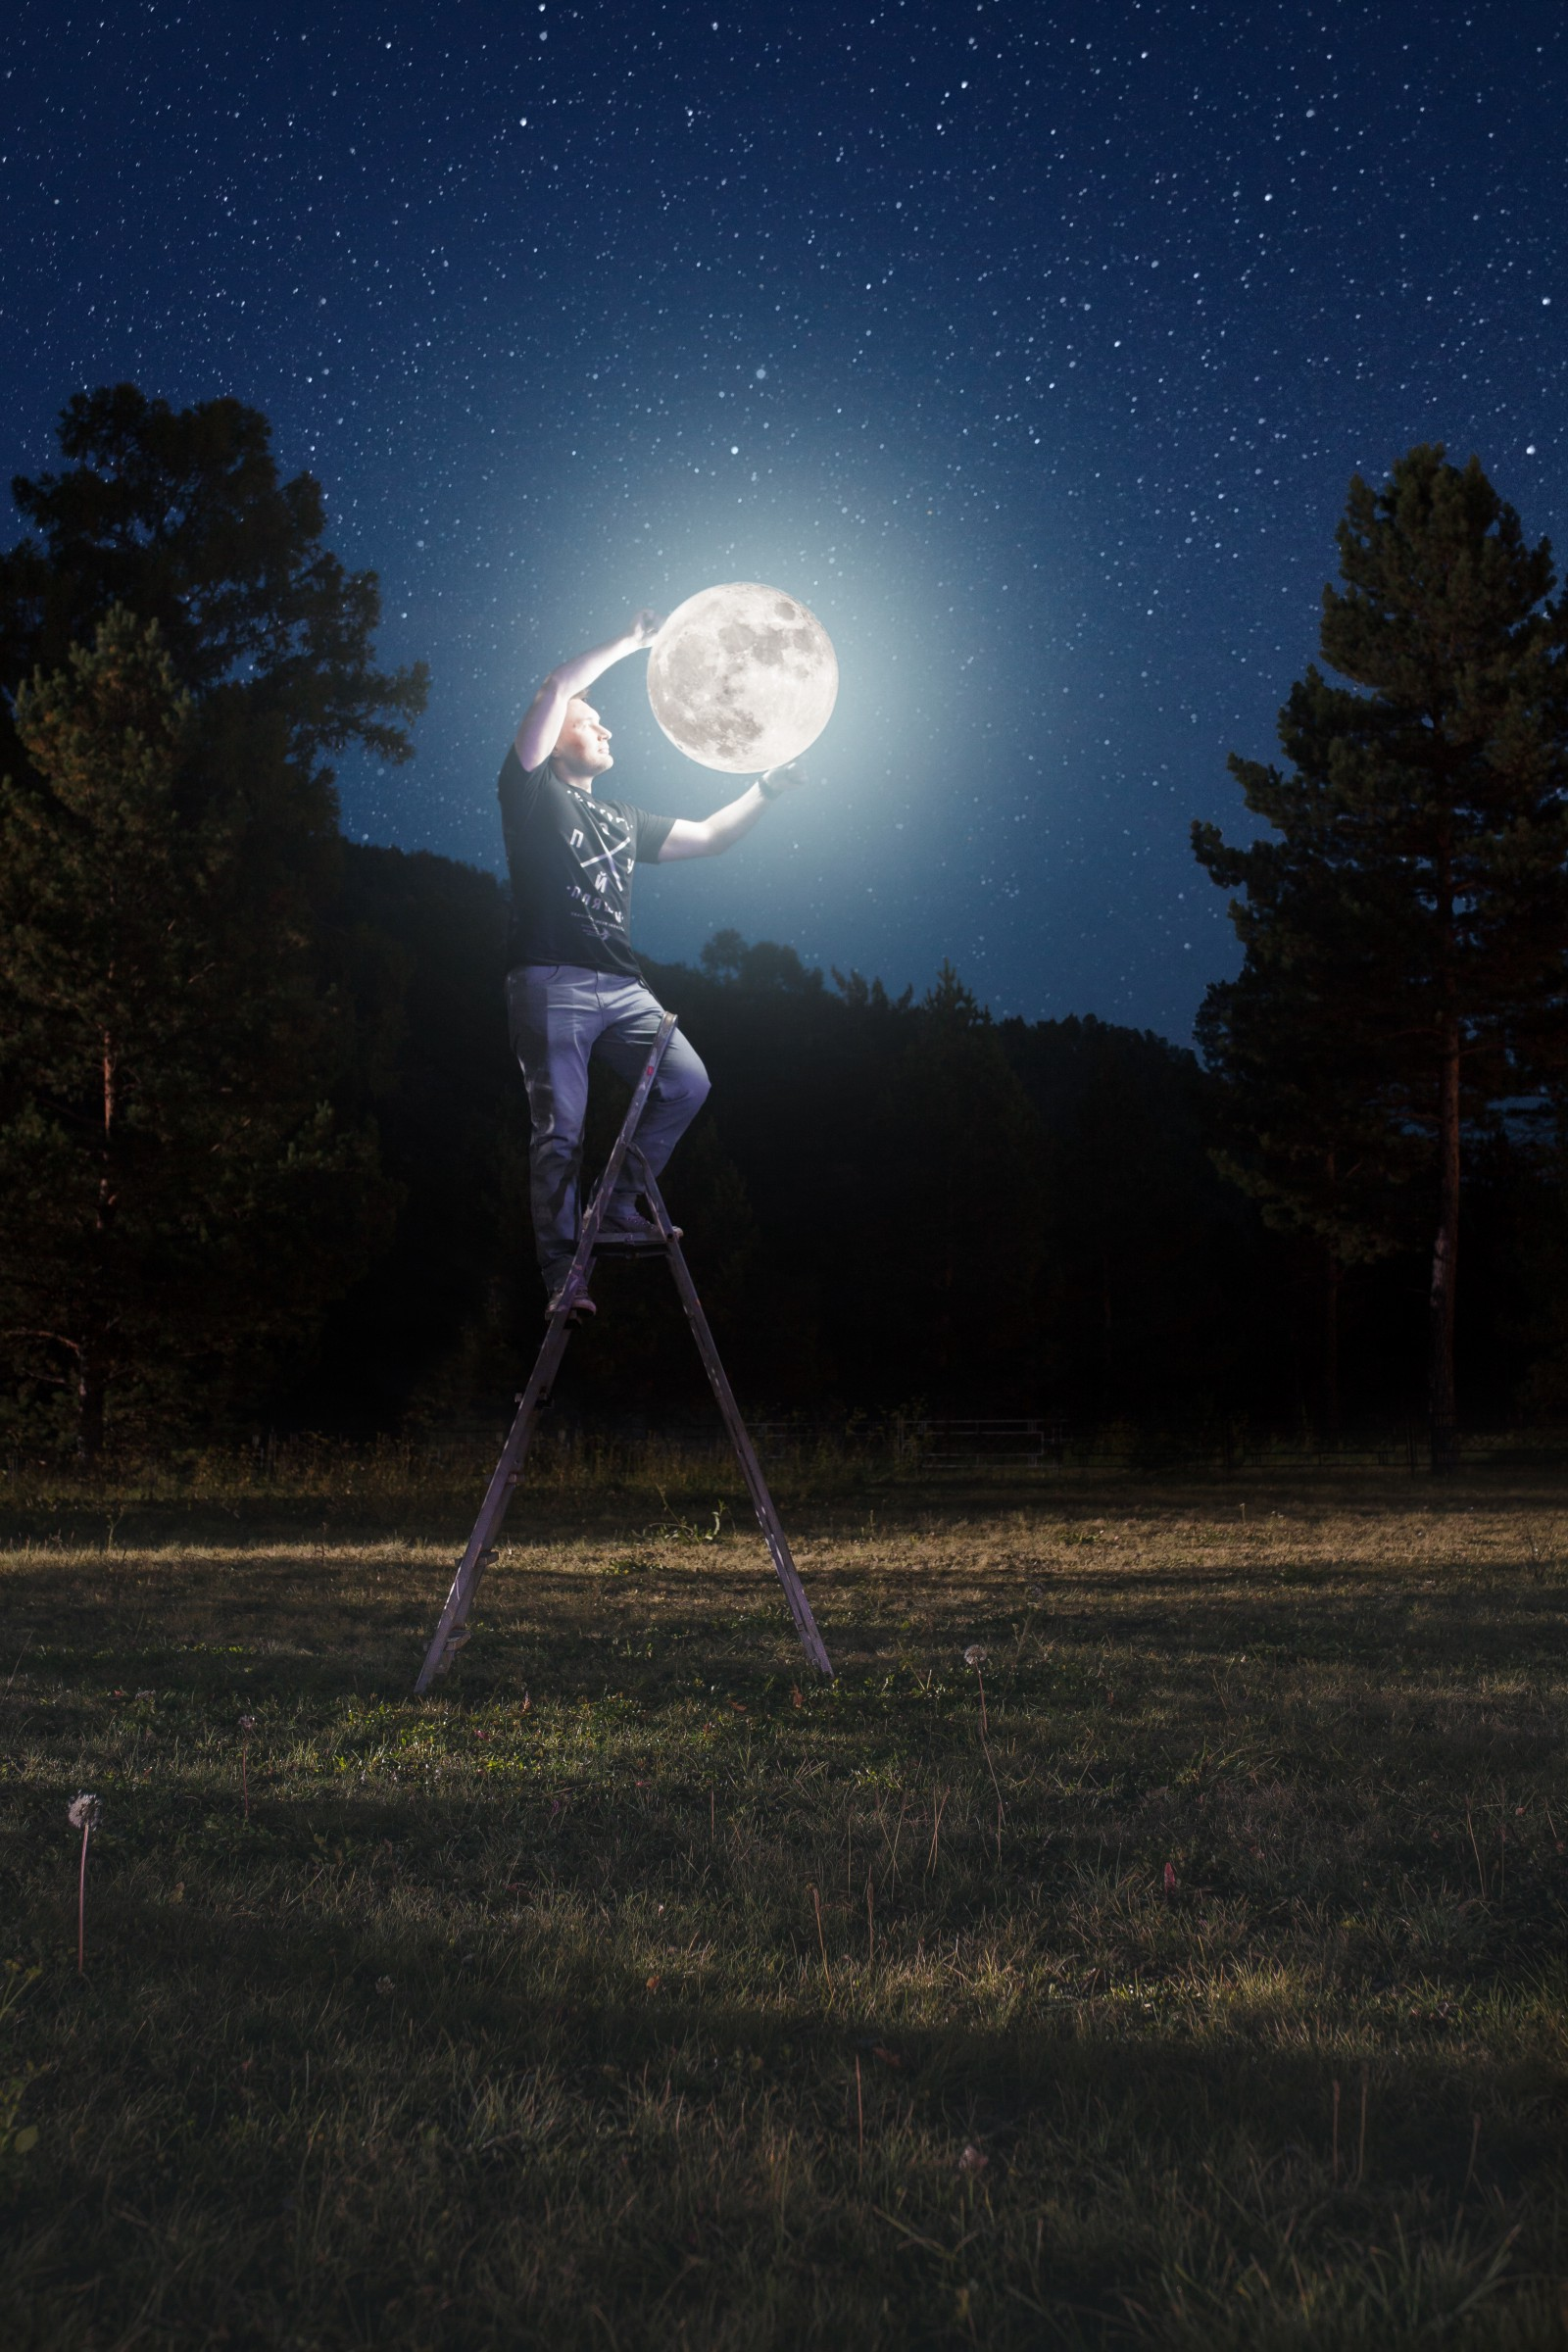 A man on a ladder poses so it appears he is holding the moon in his arms.